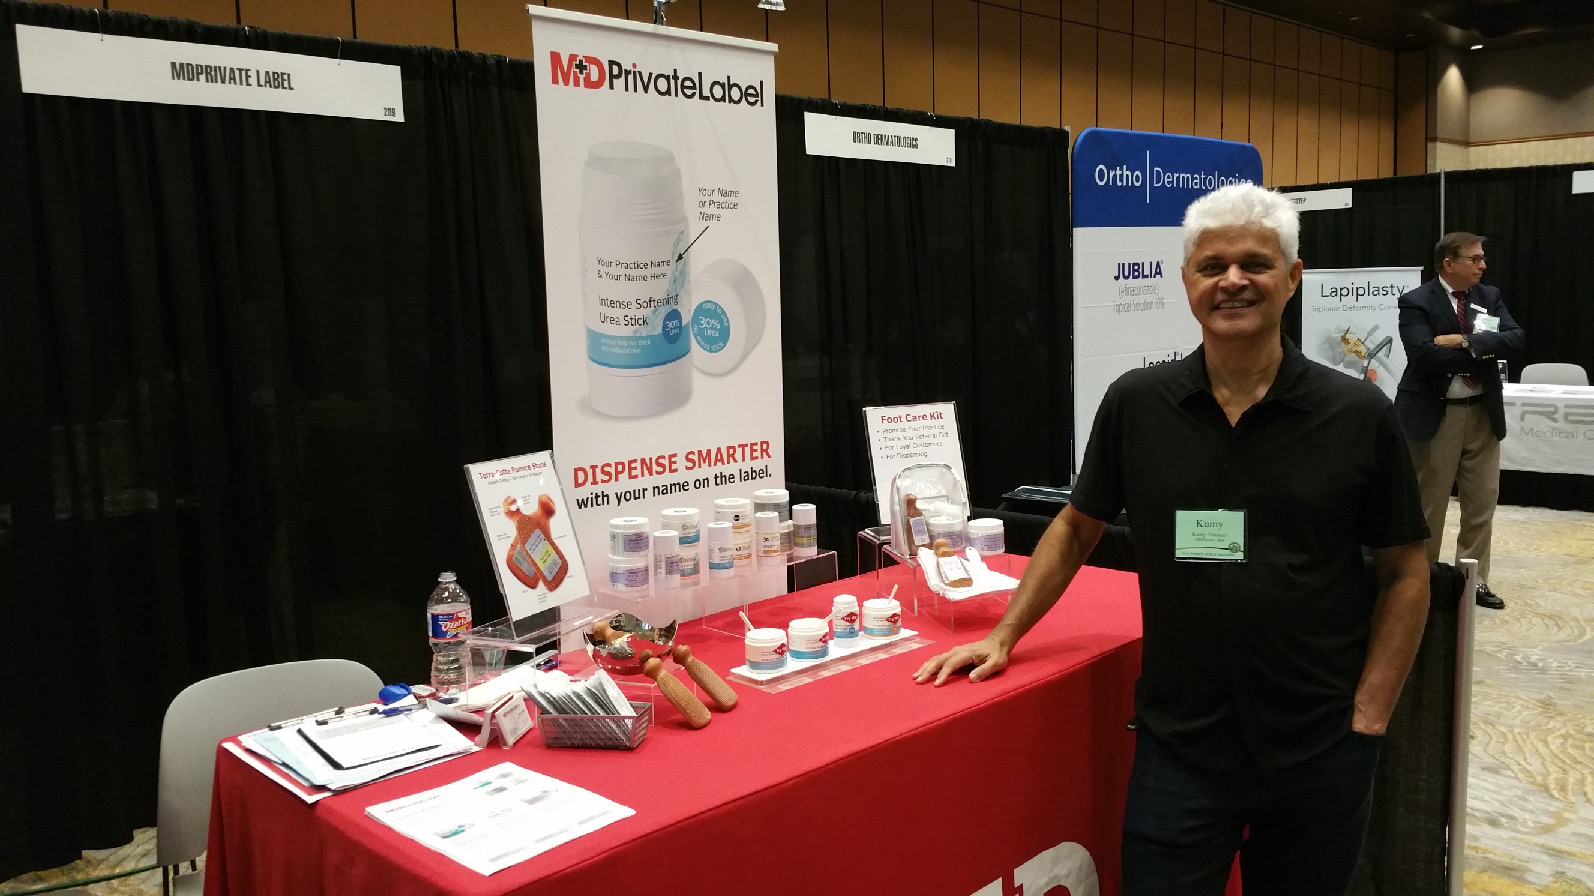 MD Private Label Booth at Frisco Podiatry Conference